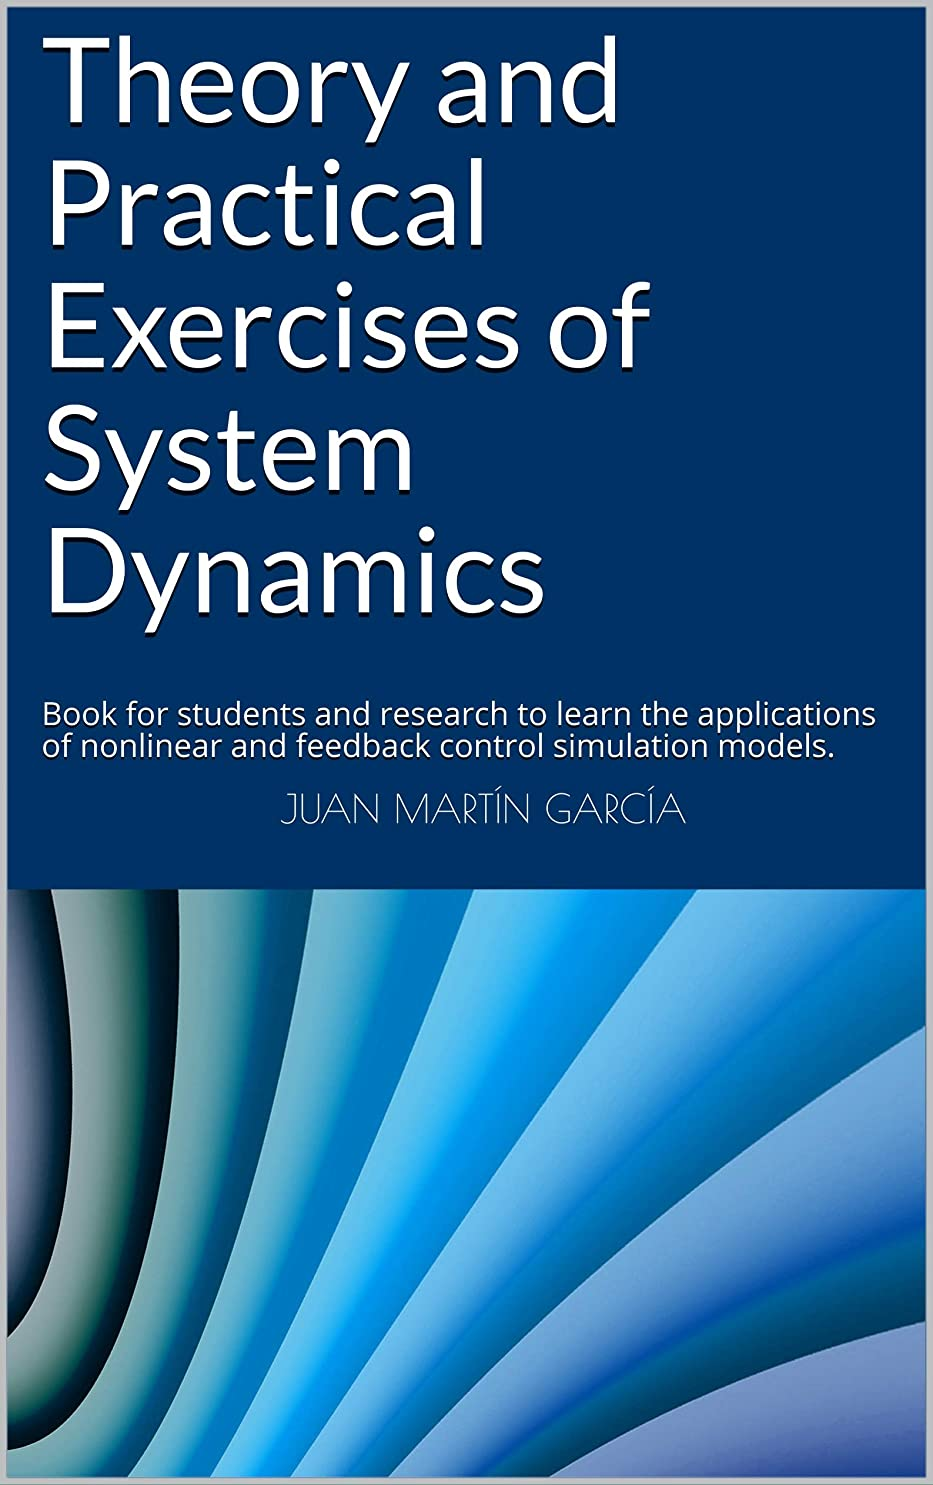 チャペル流暢運動するTheory and Practical Exercises of System Dynamics: Book for students and research to learn the applications of nonlinear and feedback control simulation ... (System Thinking 2019) (English Edition)